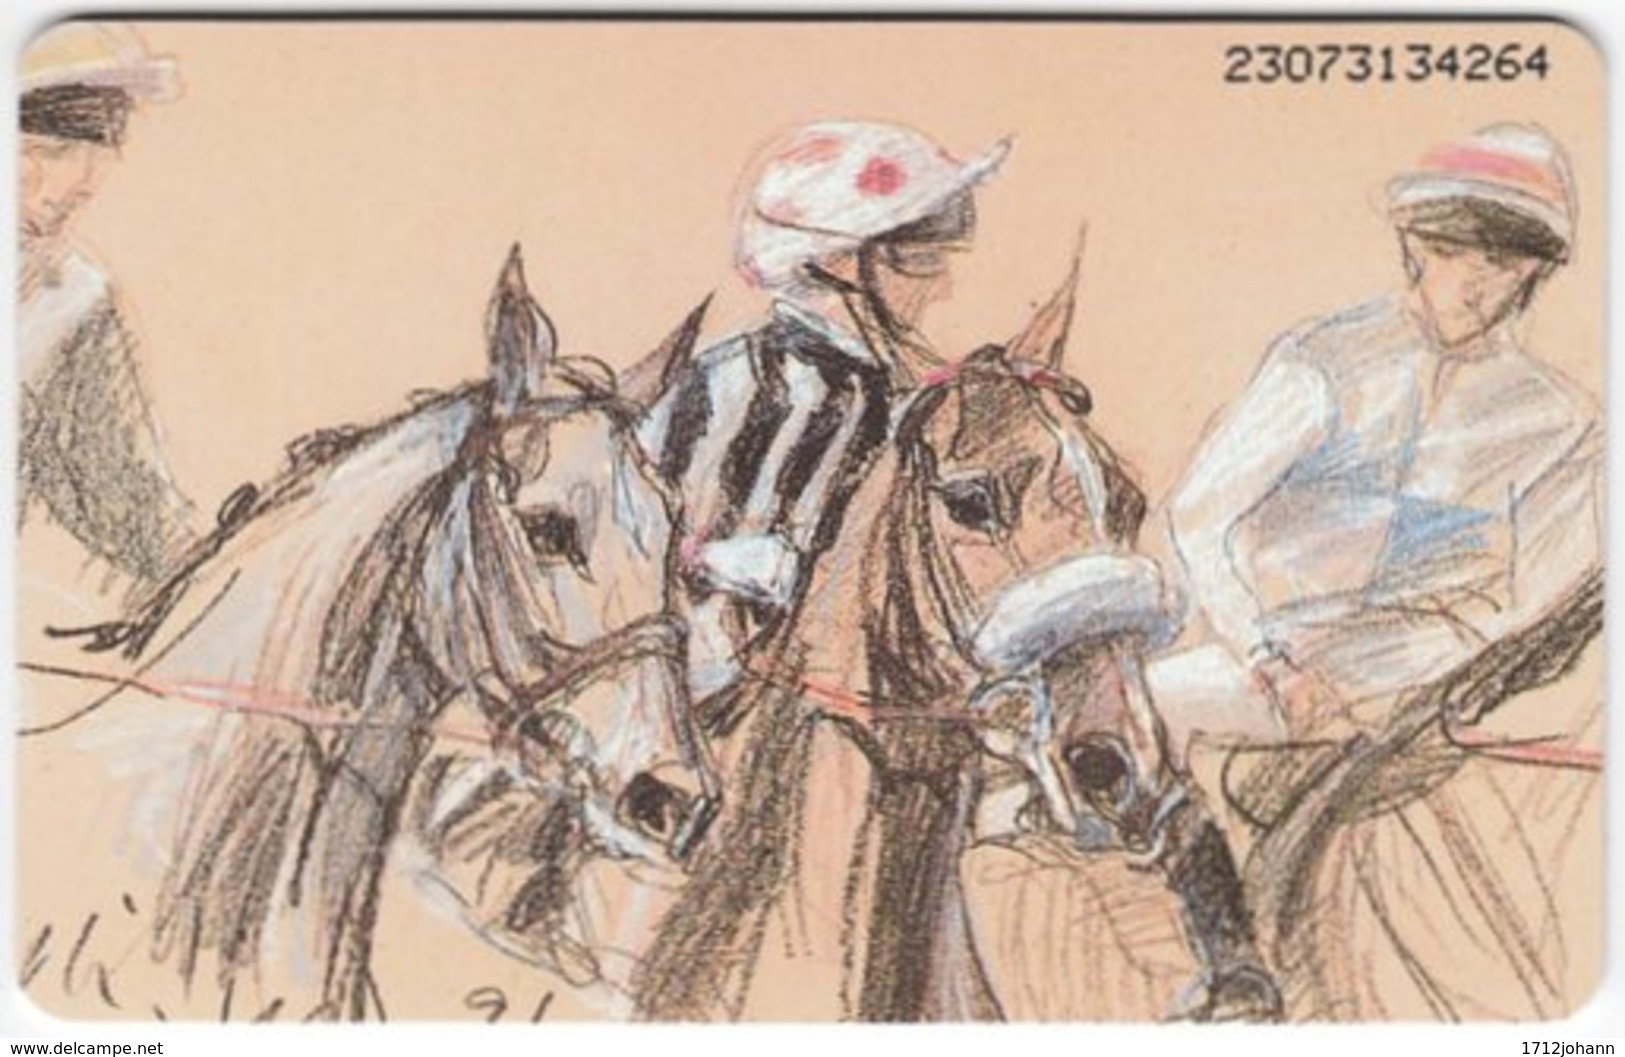 GERMANY K-Serie A-528 - 805 07.93 - Painting, Animal, Horse Race - MINT - Deutschland